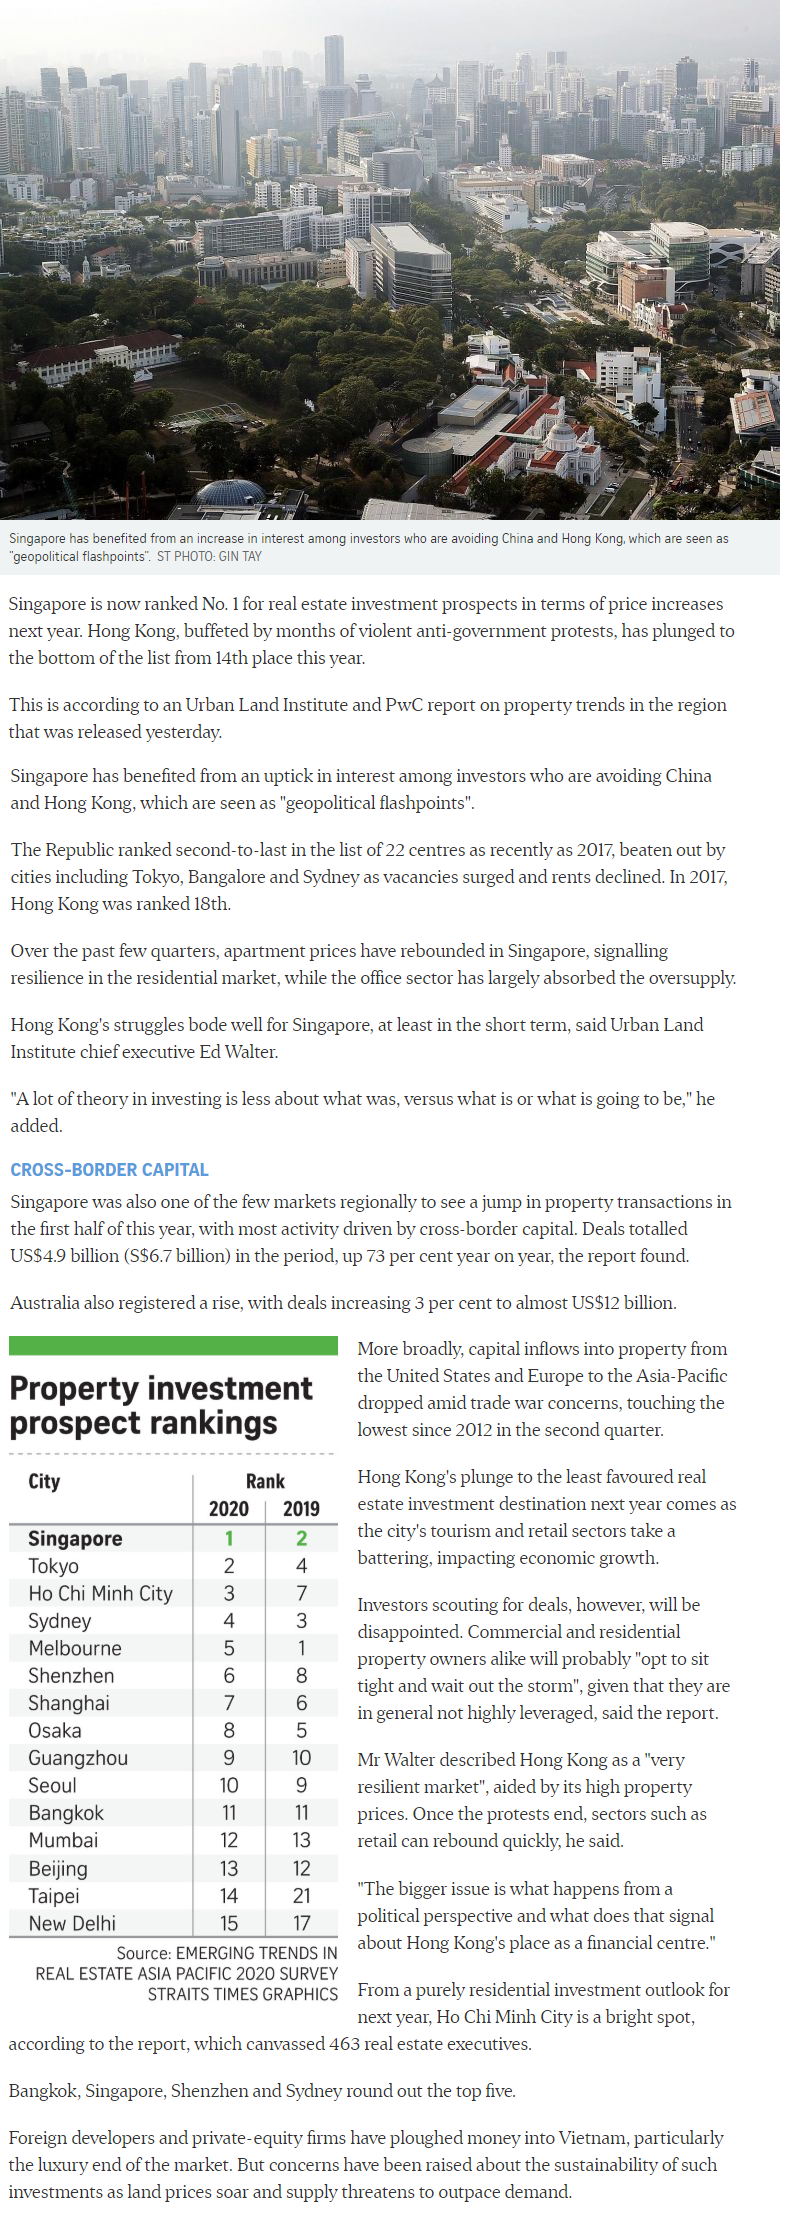 The Lumos - Singapore Tops Region For Property Investment Prospects